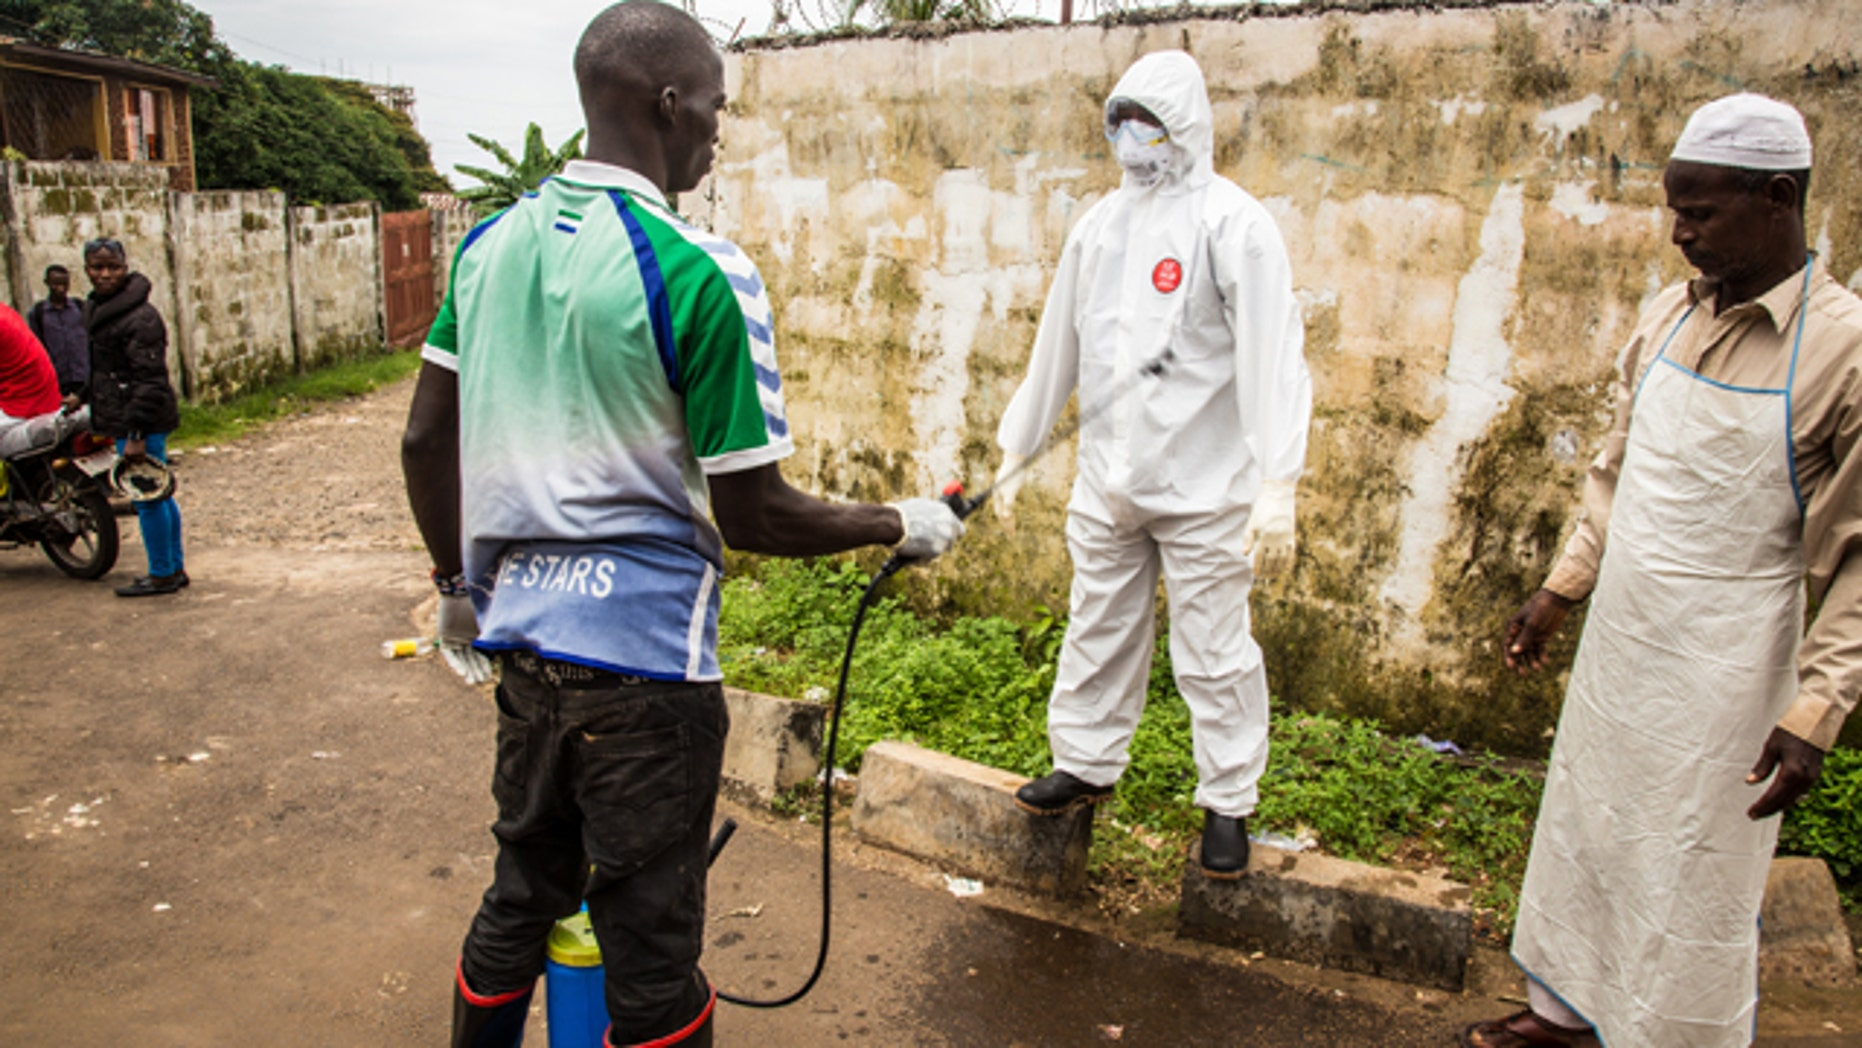 September 24, 2014: A health worker sprays disinfectant on a colleague after he assisted in the loading of a man suspected of suffering from the Ebola virus into an ambulance, in Freetown, Sierra Leone. (AP Photo/ Michael Duff)